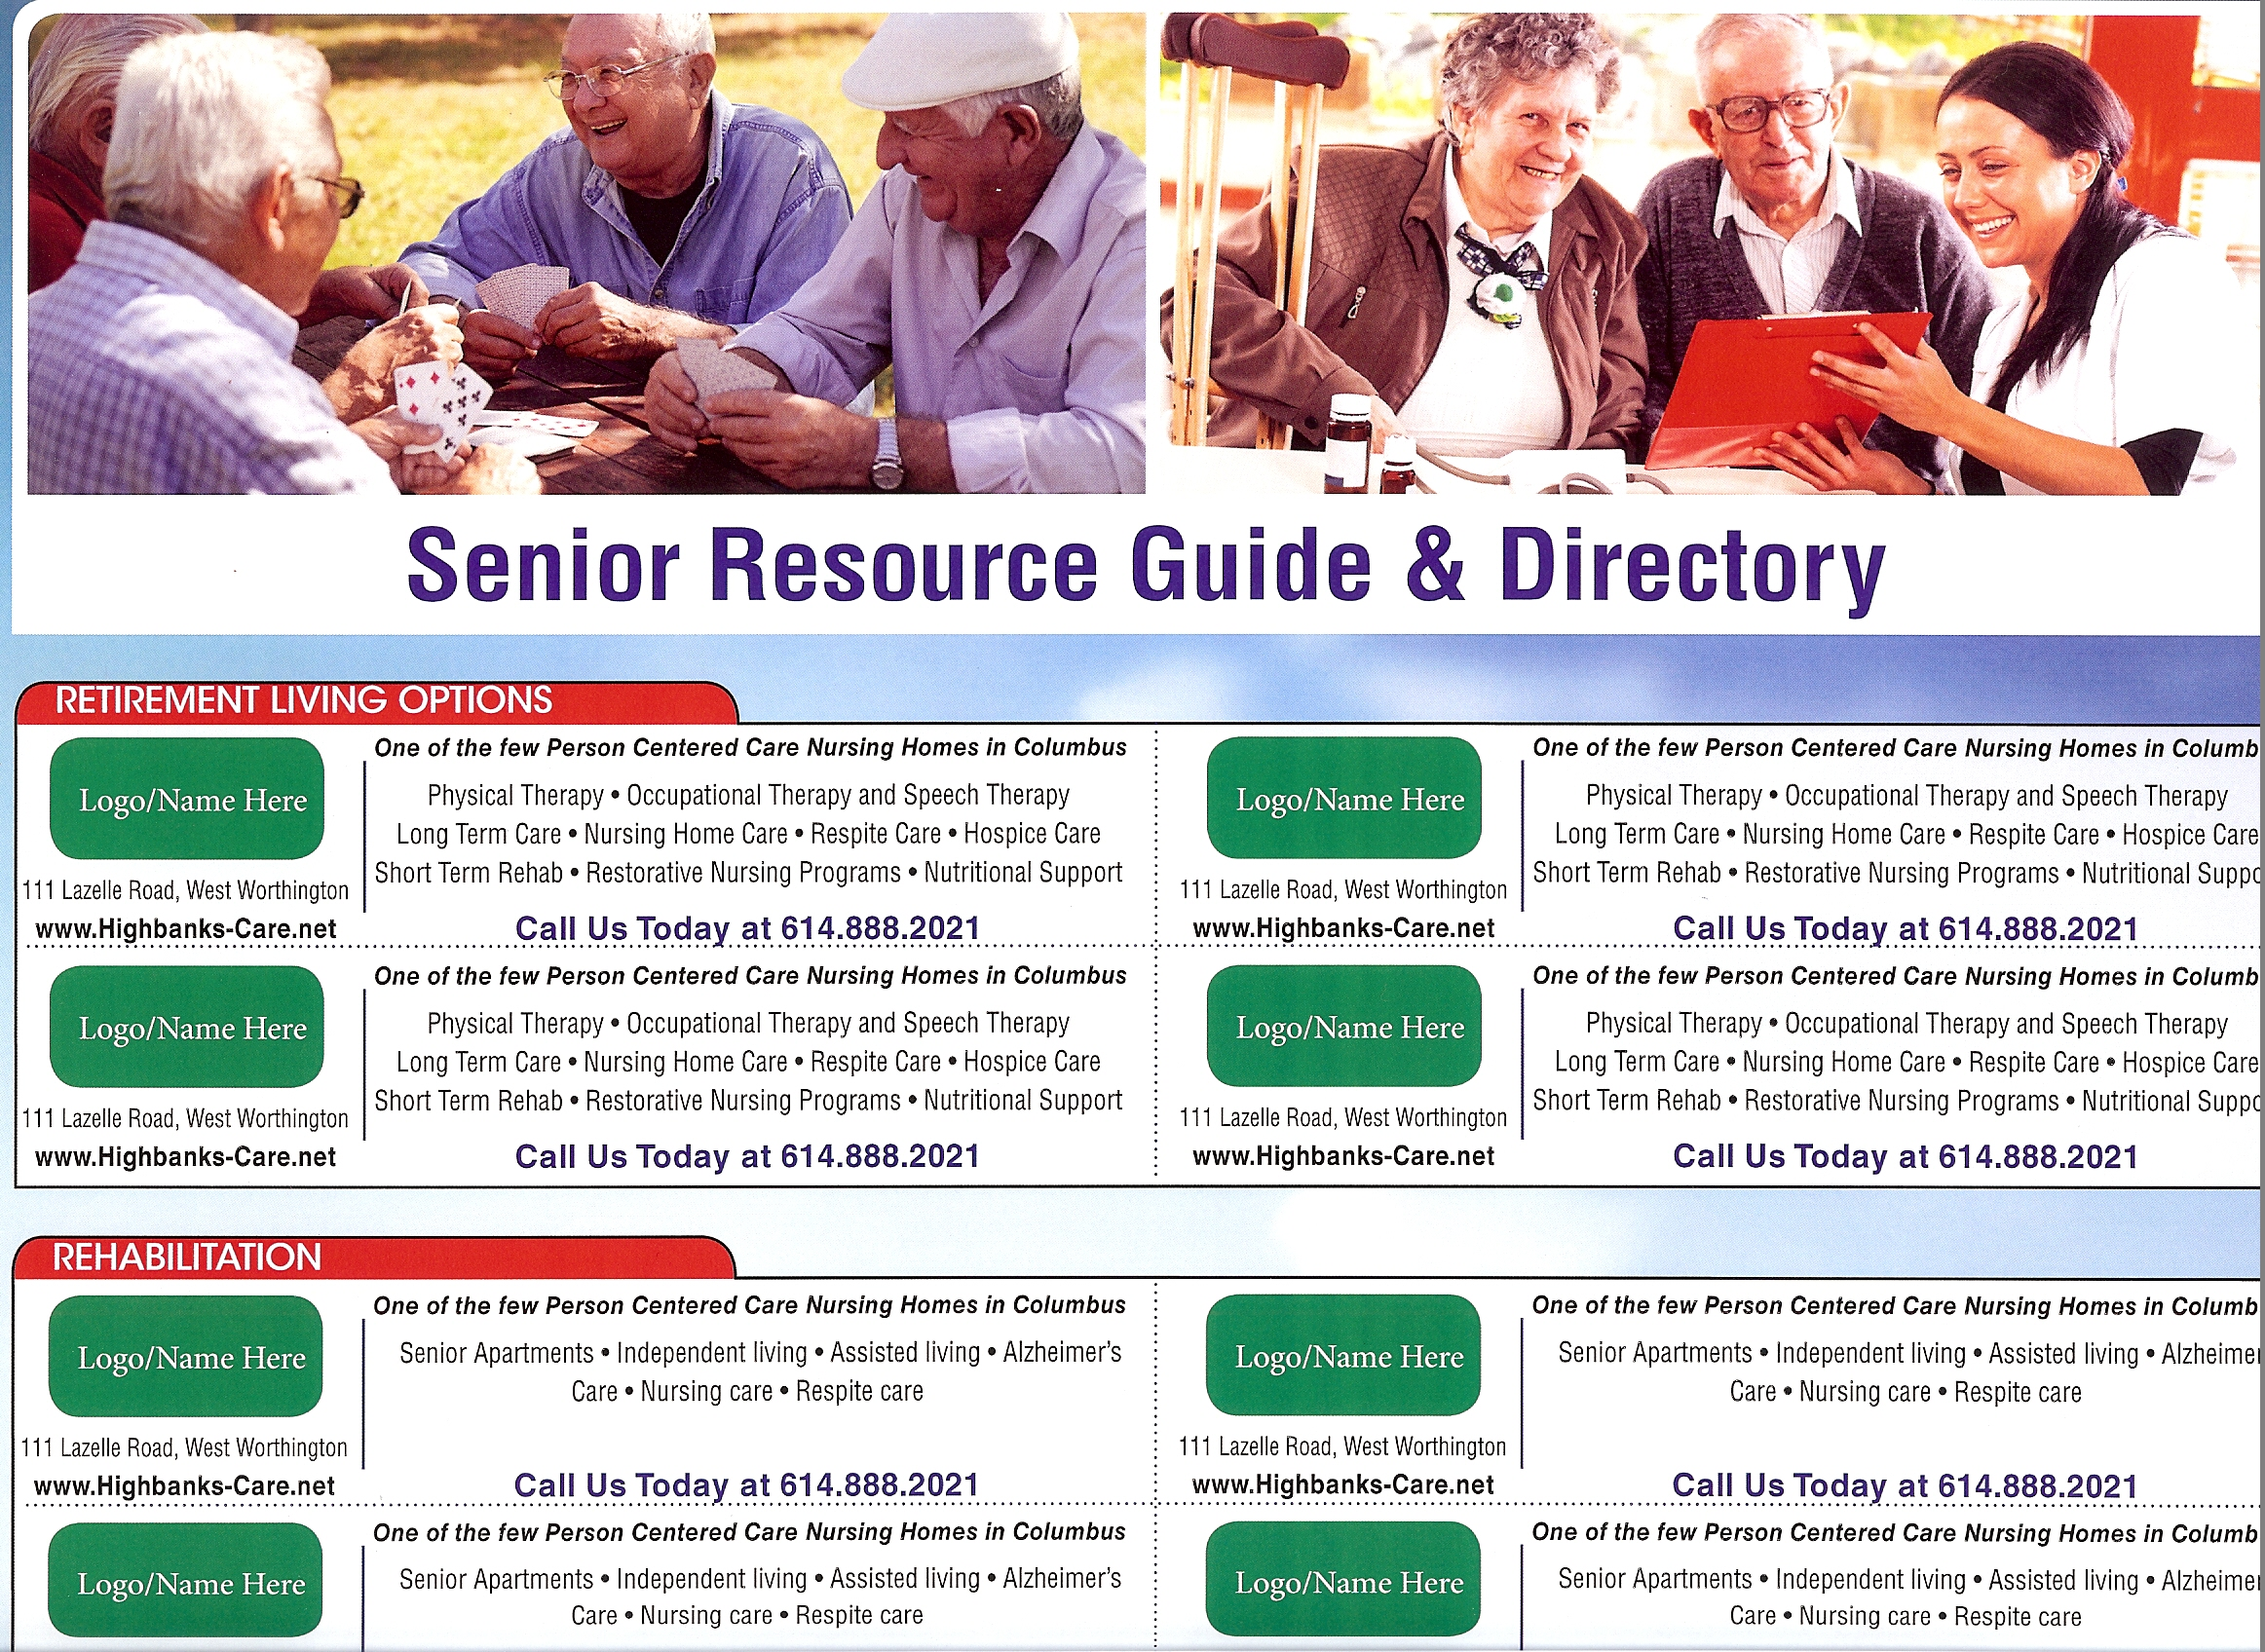 HFM Publications Buckeye Community Calendars Professional Senior Resource Guide